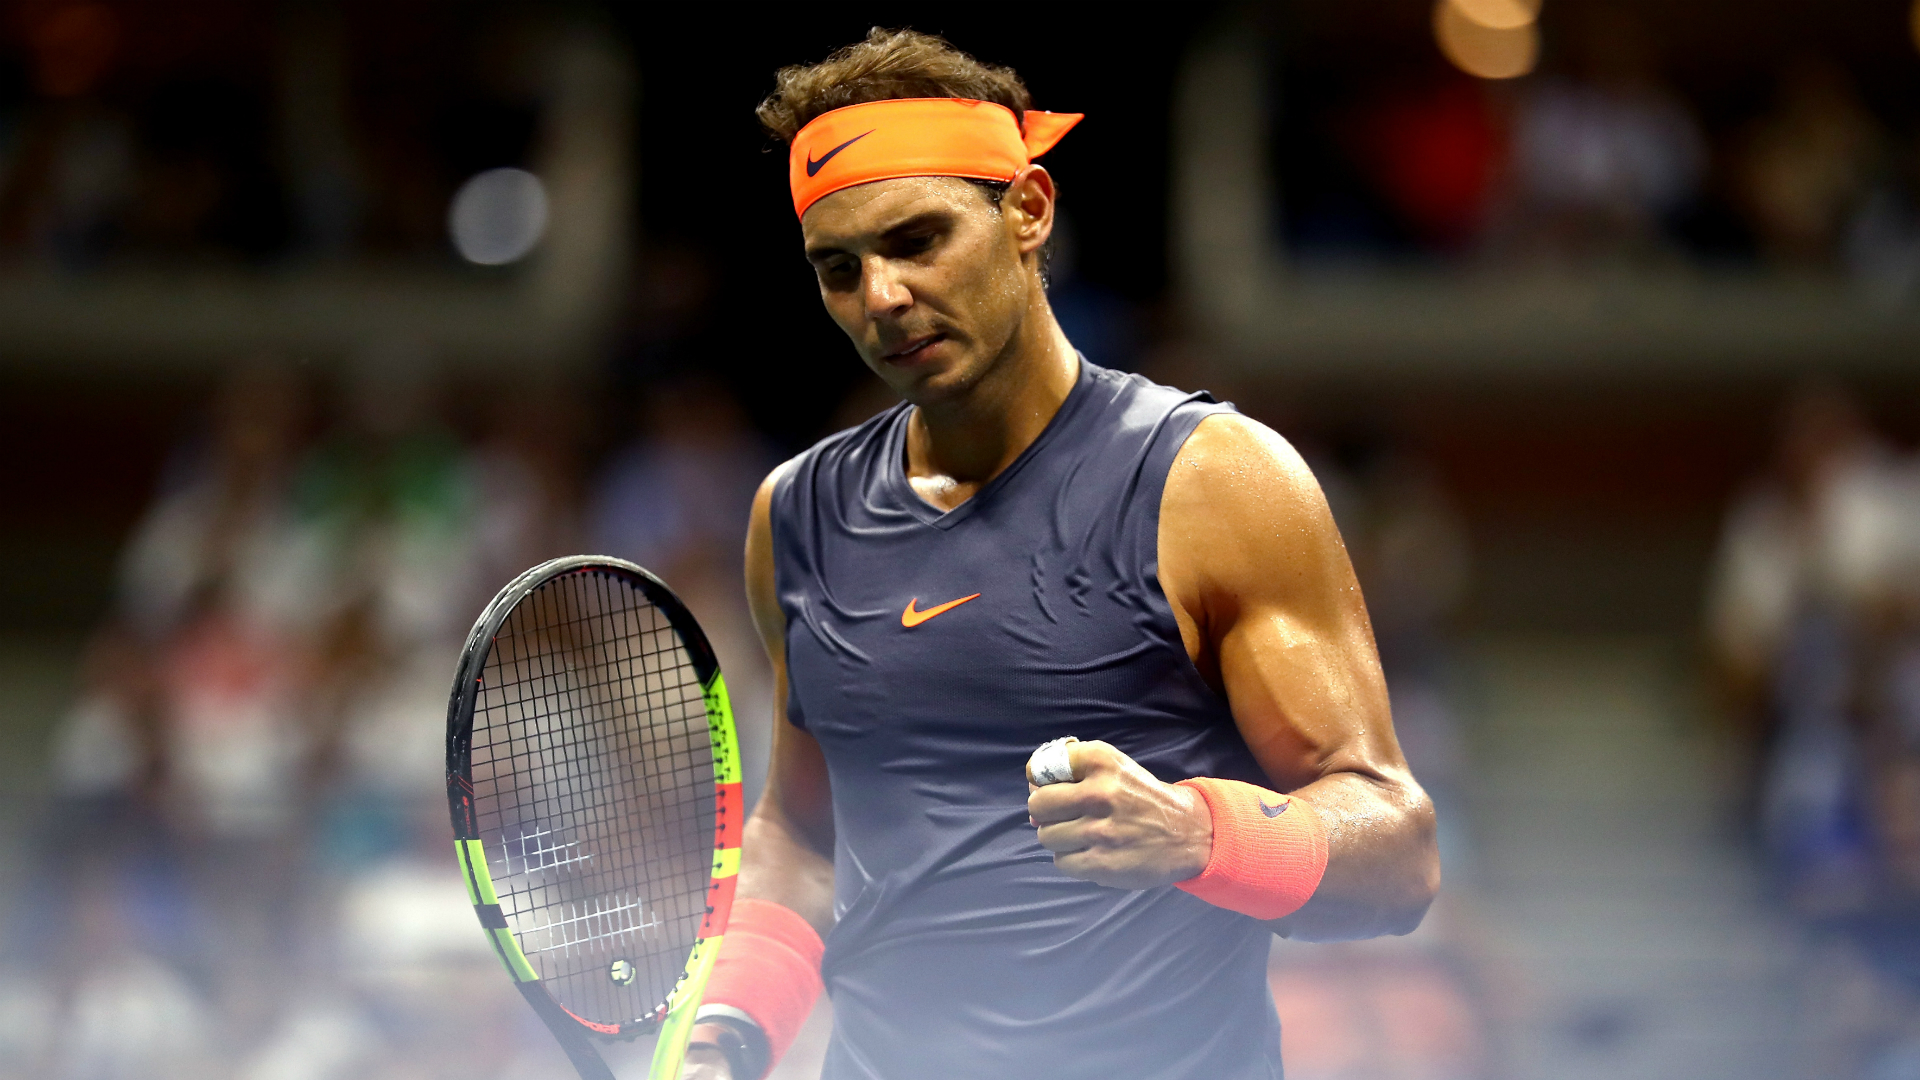 Shirtless Rafael Nadal - The Hunk in pictures :)